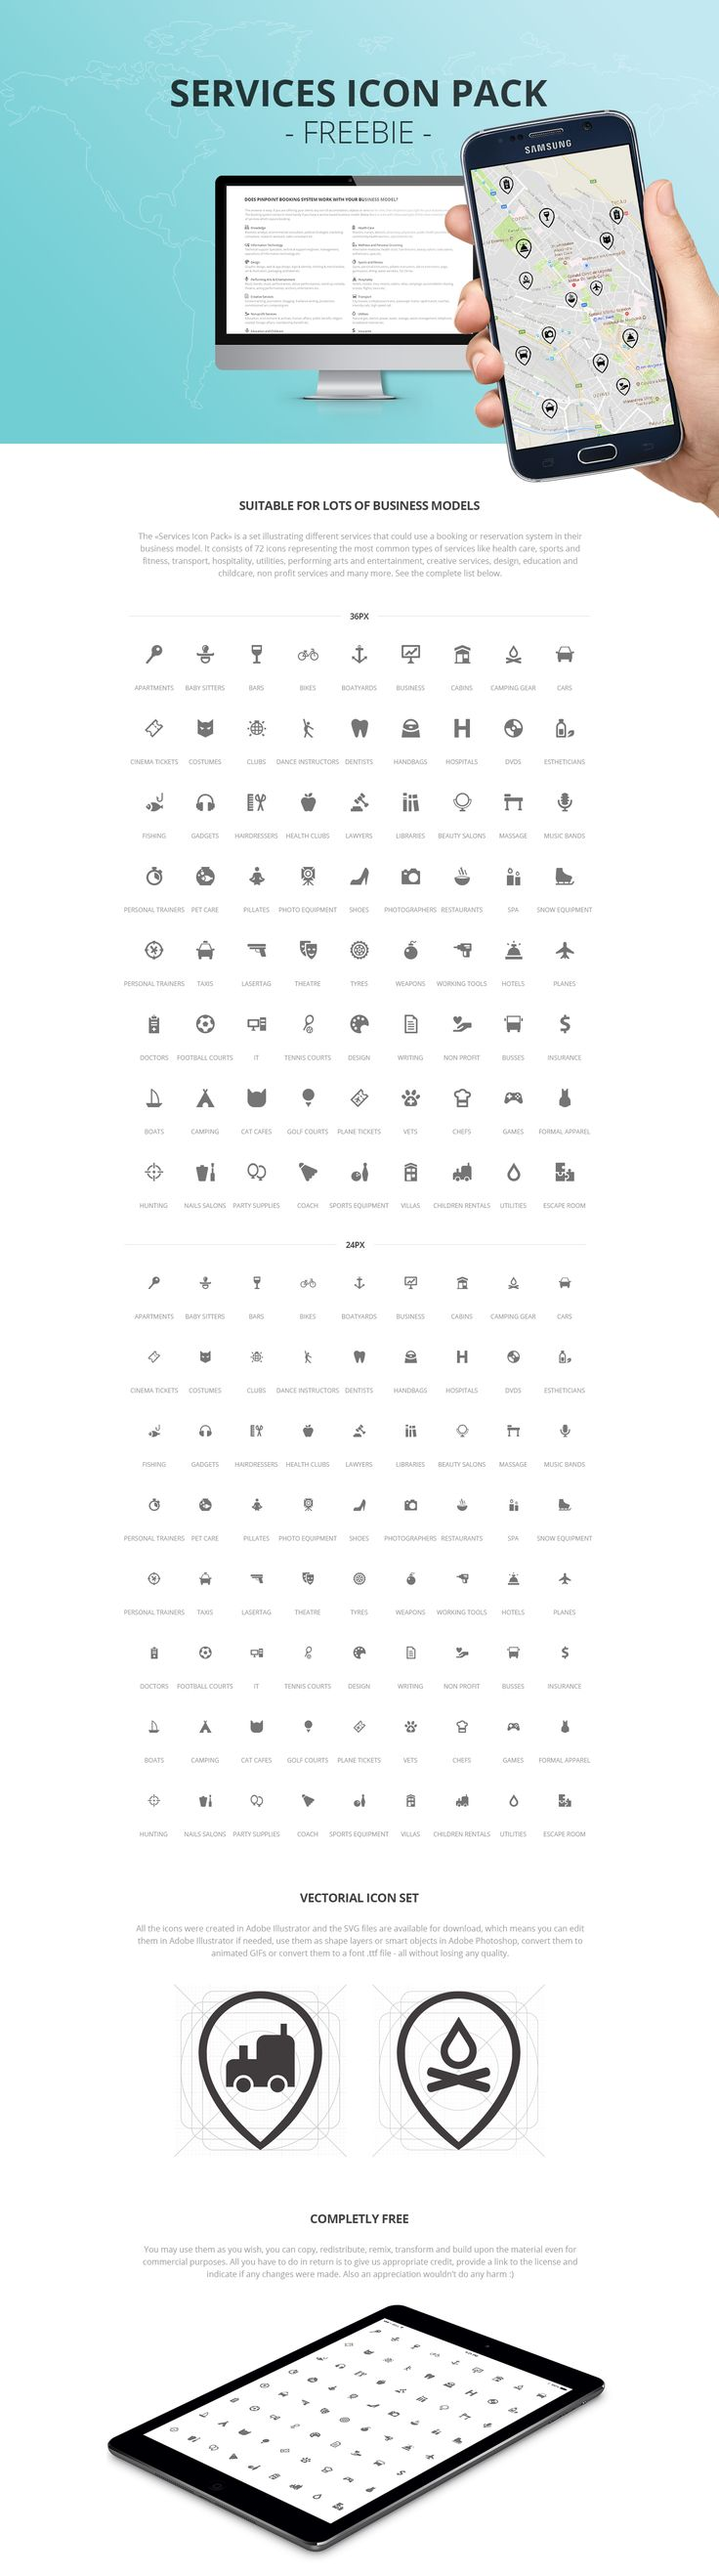 Services Icon Pack - Freebie